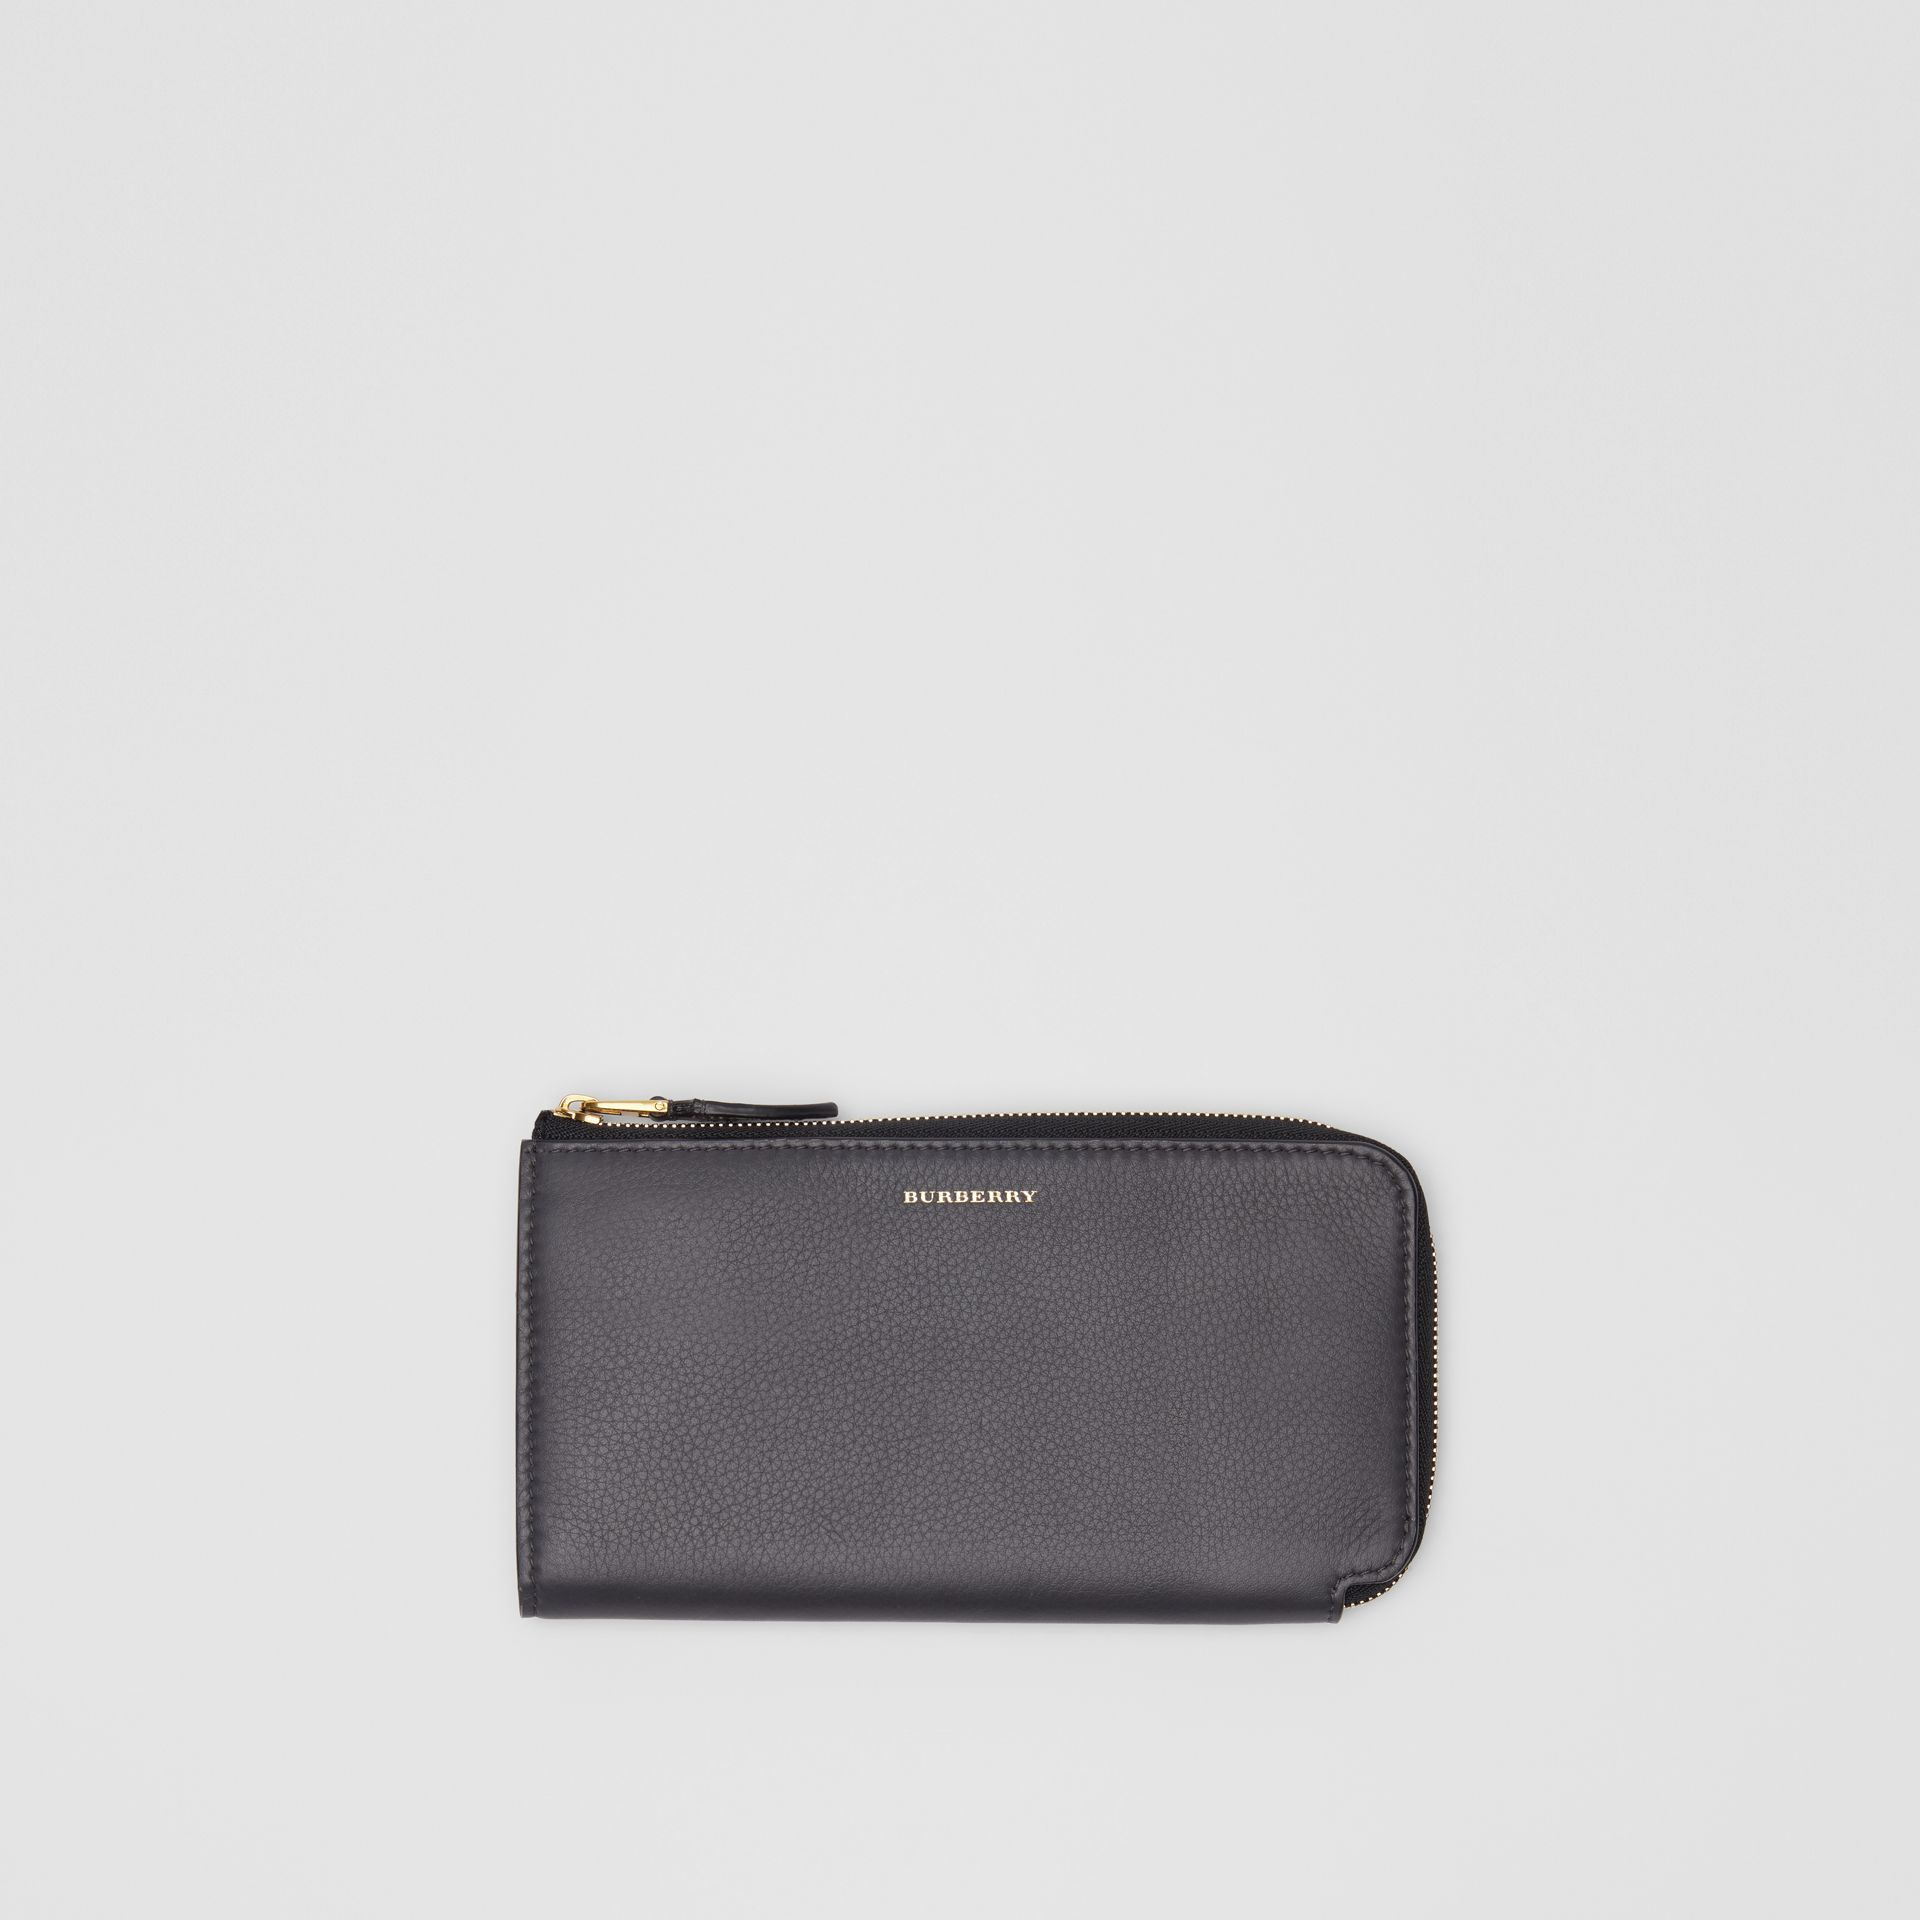 Two-tone Leather Ziparound Wallet and Coin Case in Charcoal Grey - Women | Burberry United Kingdom - gallery image 0